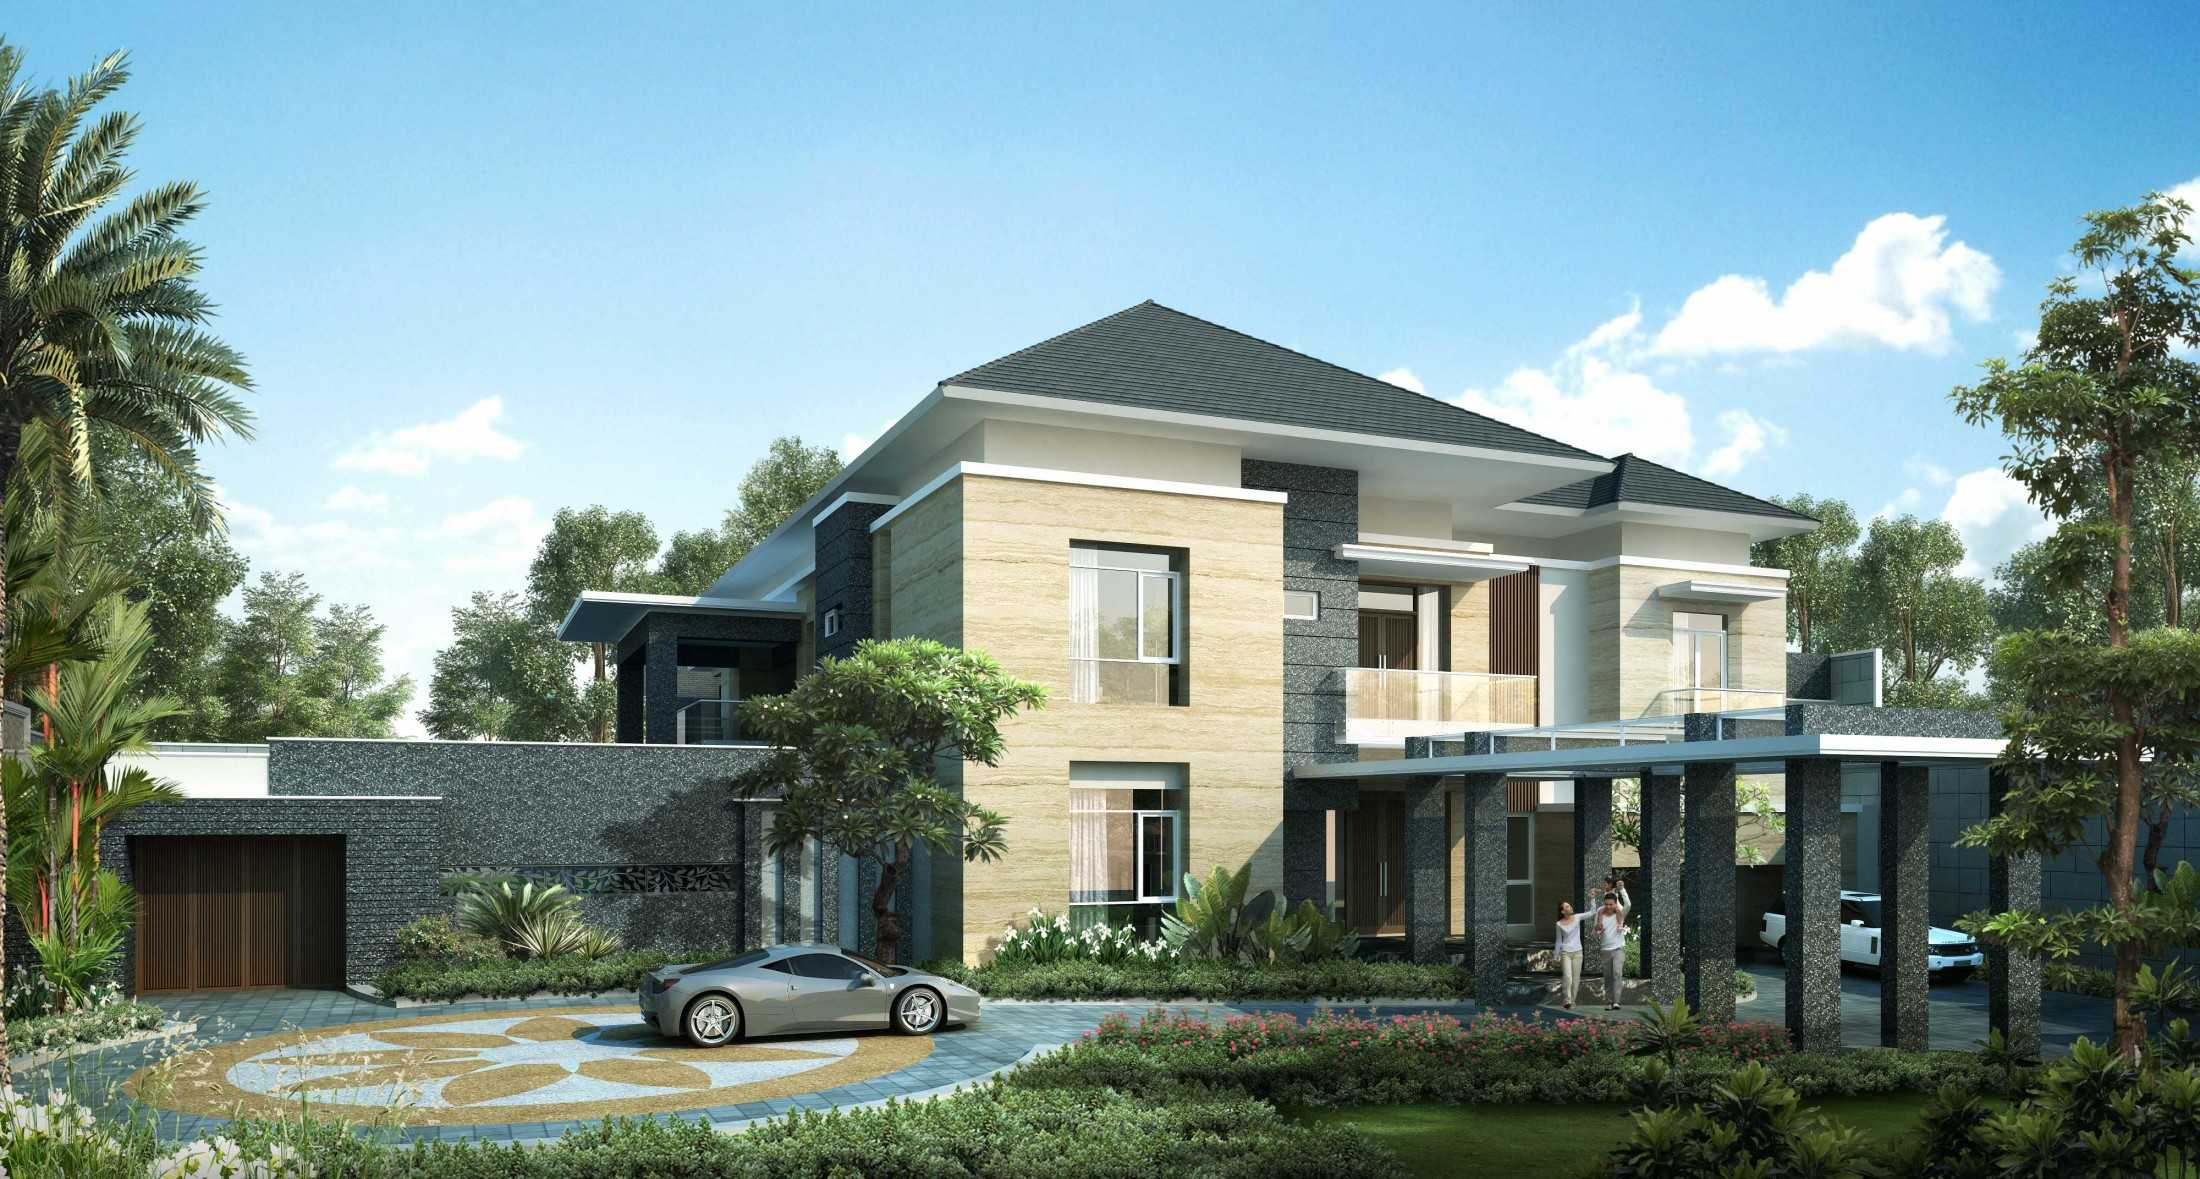 Subject Architecture Project Bougenville (Fasade Development) Makassar, Kota Makassar, Sulawesi Selatan, Indonesia Makassar, Kota Makassar, Sulawesi Selatan, Indonesia Front Perspective Modern 76940